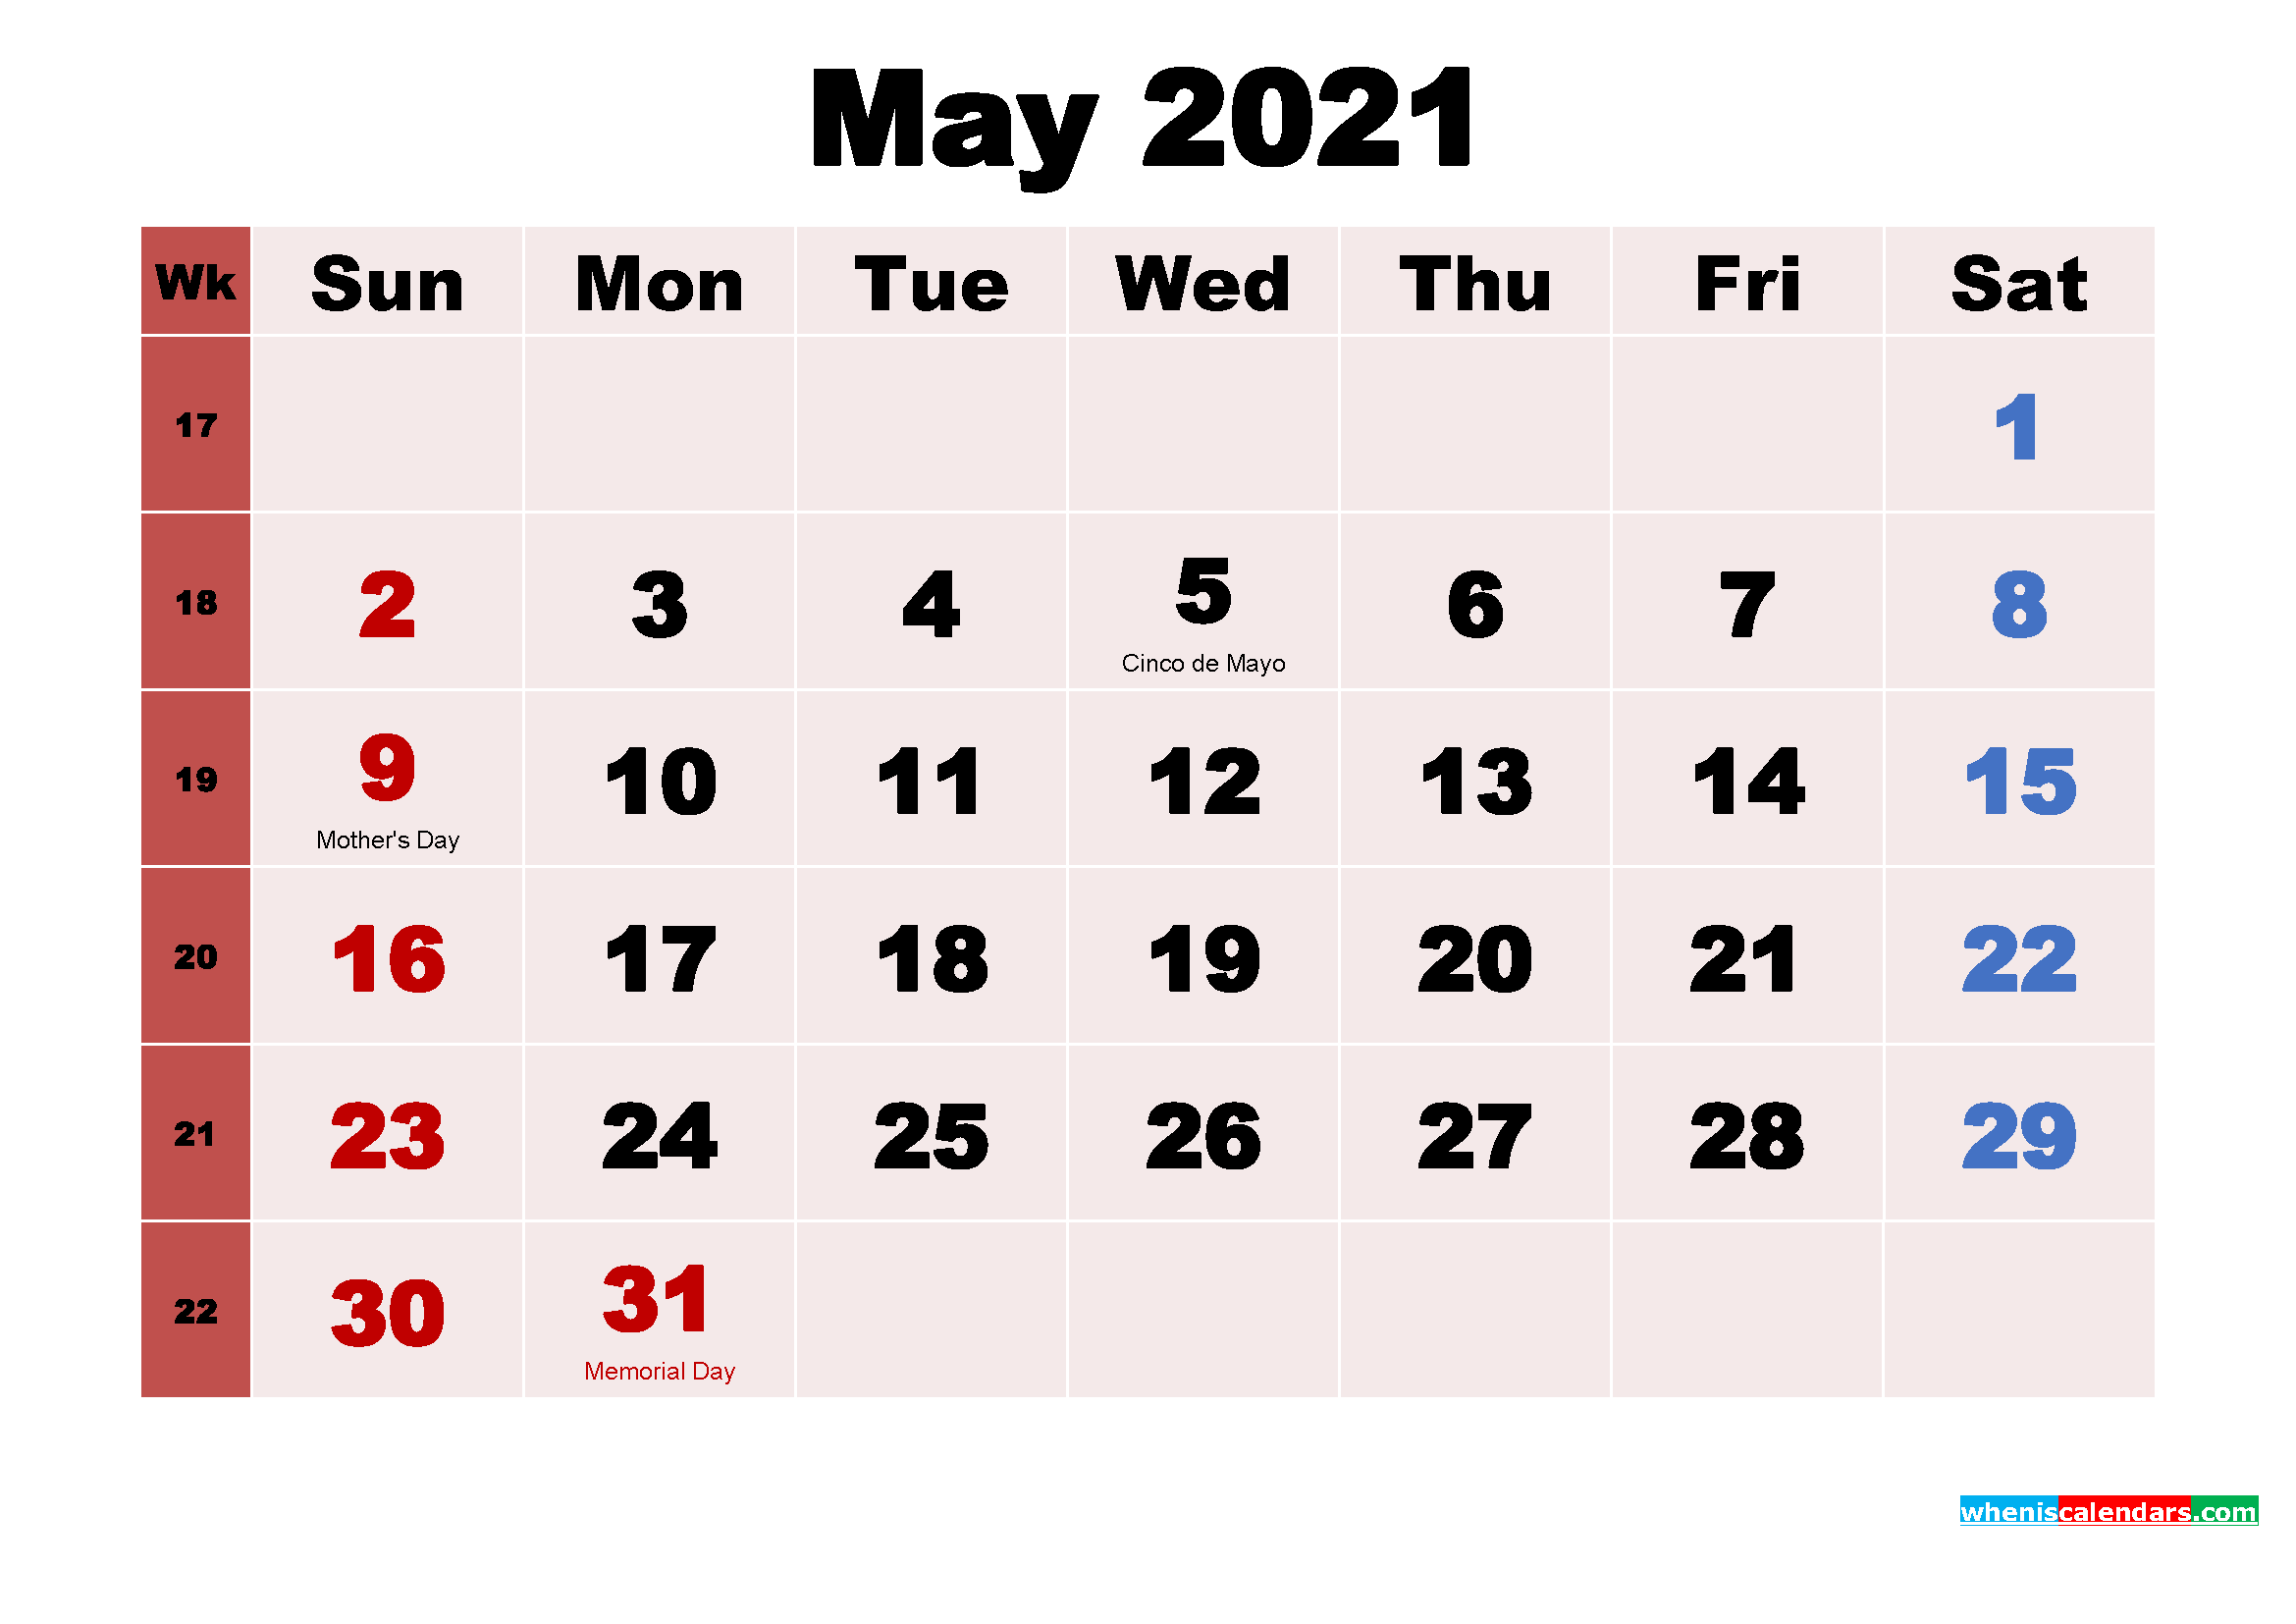 Printable Calendar for May 2021